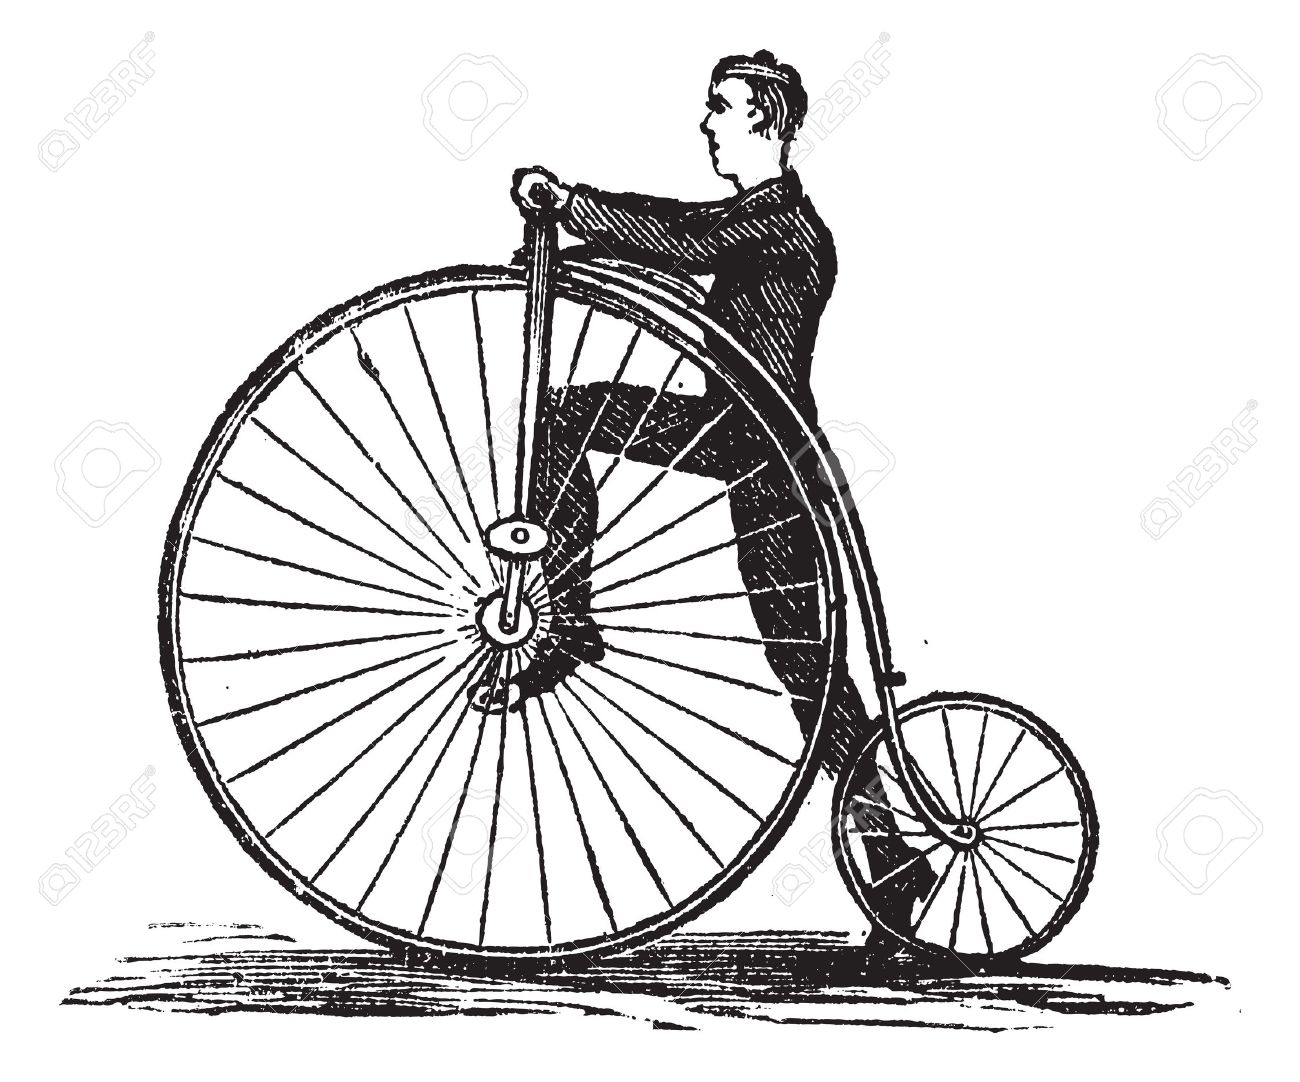 High Wheel Bicycle Clipart